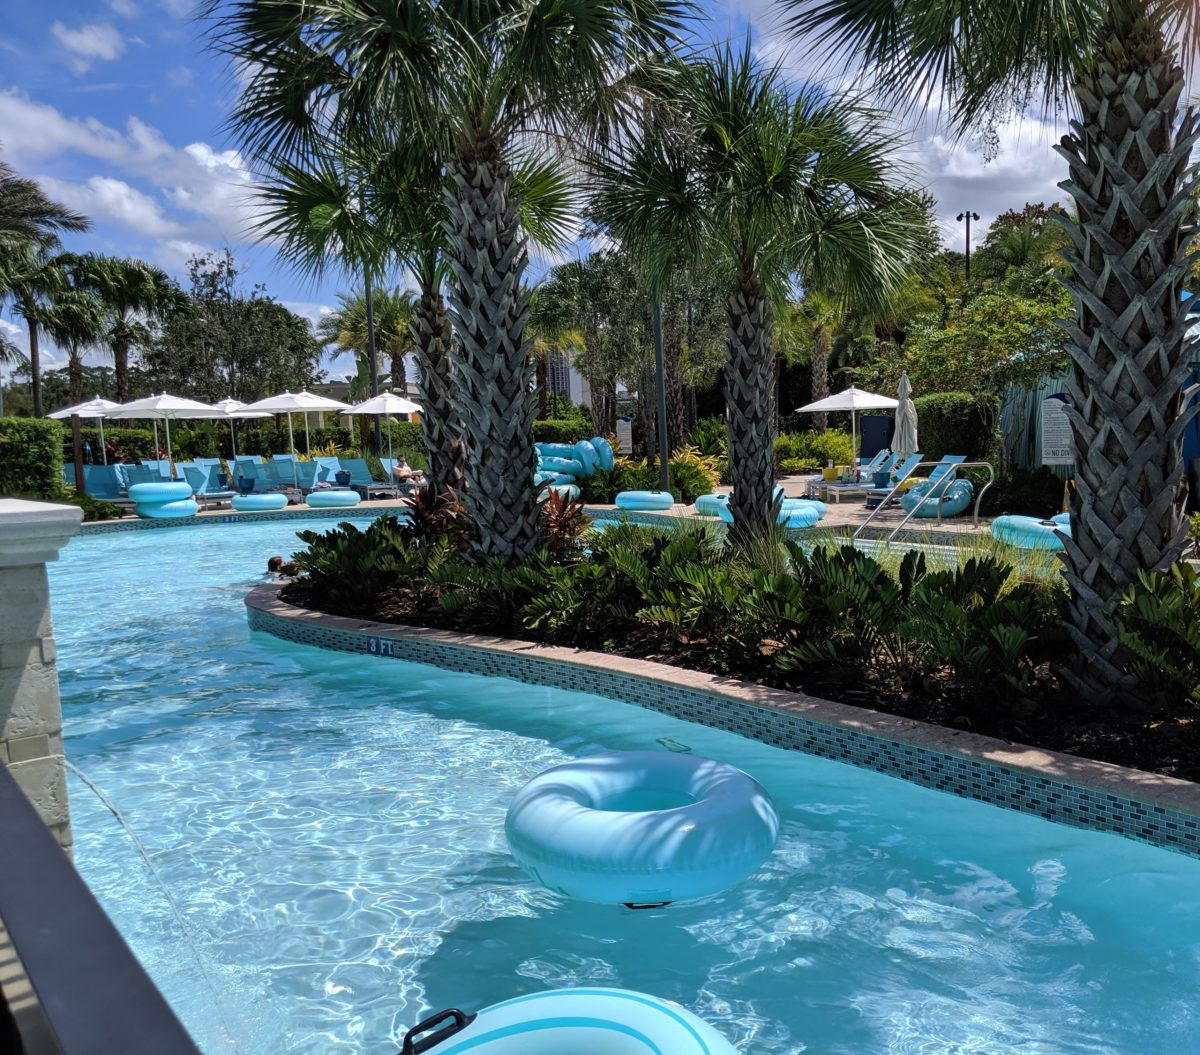 A picture of the lazy river at Hilton Orlando Buena Vista Palace Disney Springs hotel